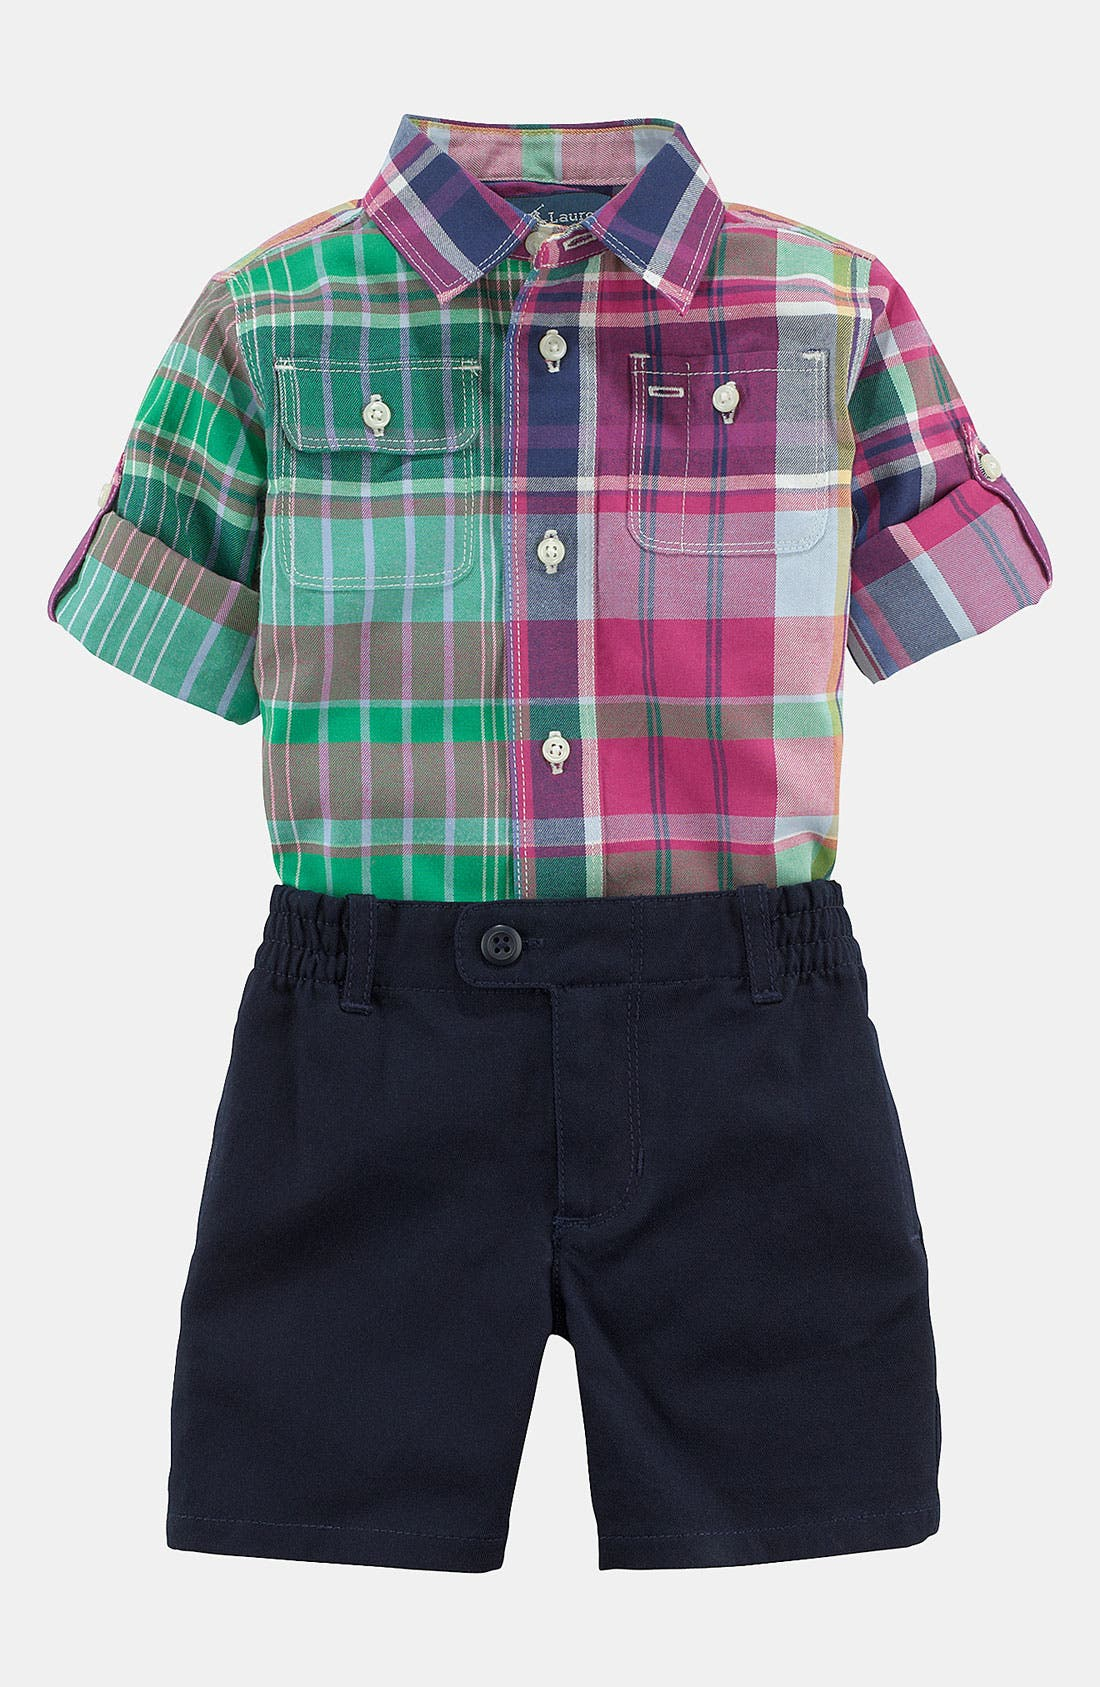 Alternate Image 2  - Ralph Lauren Plaid Shirt & Shorts (Baby)